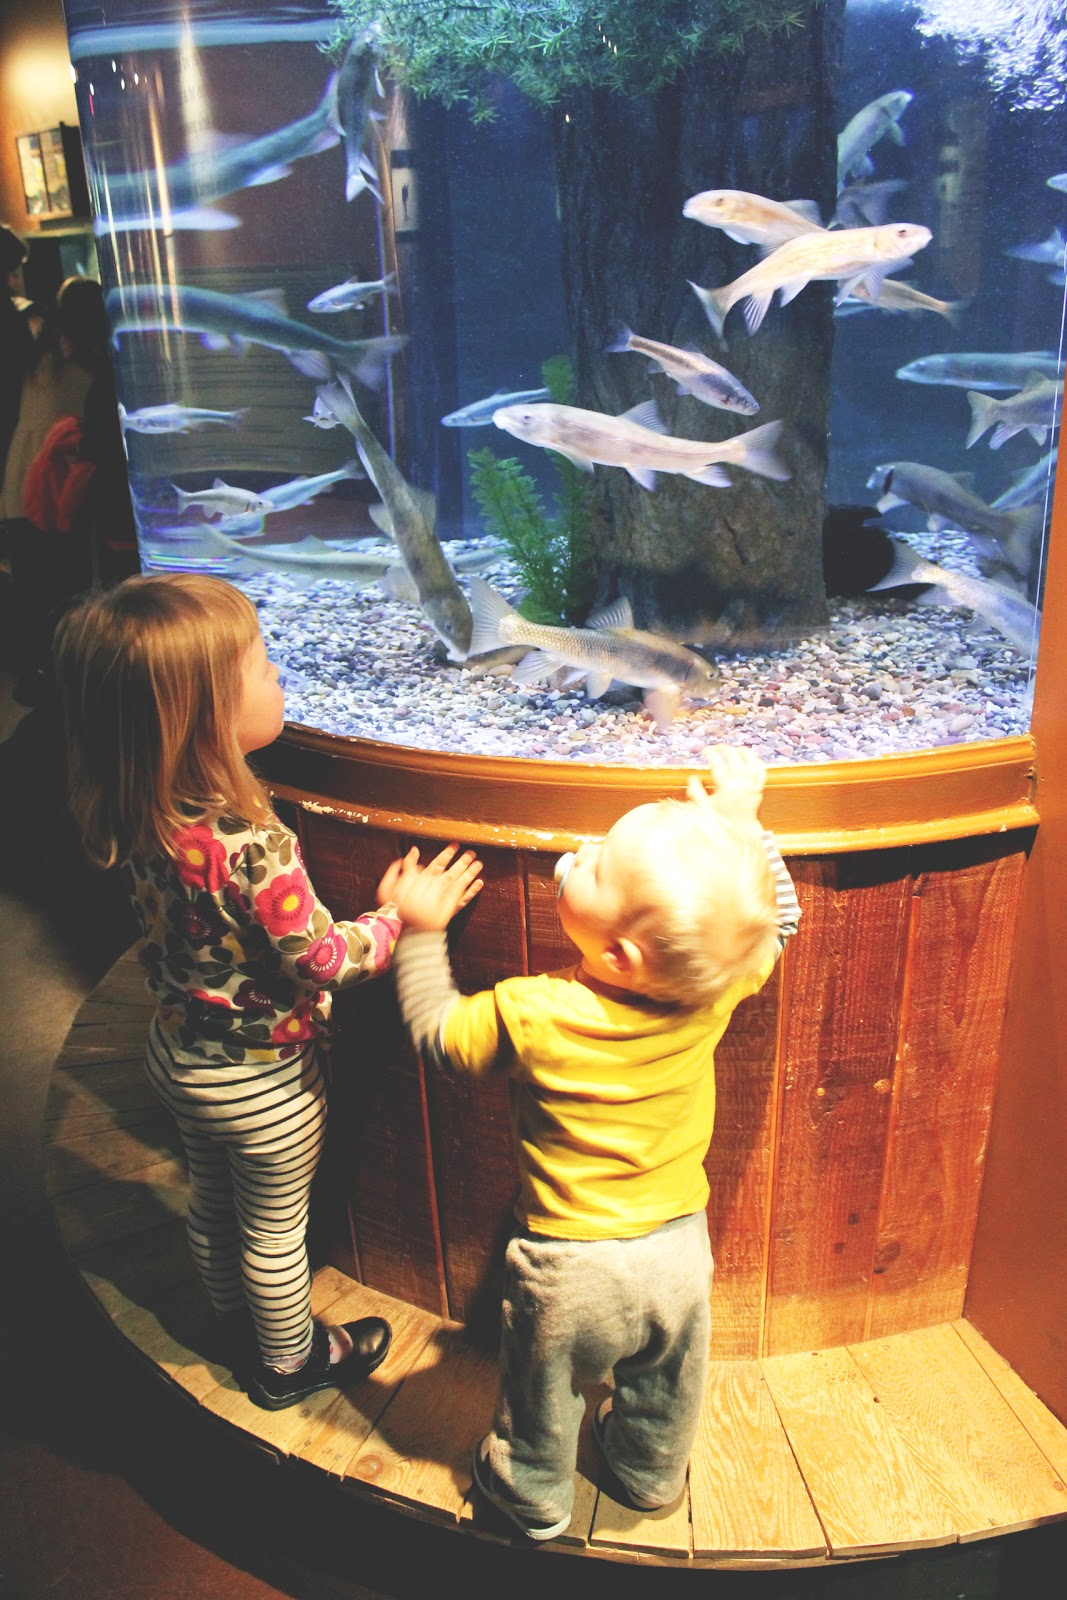 a visit to the aquarium Get this from a library a visit to the aquarium [mary lindeen] -- take a trip to the local aquarium see the fish, turtles, sharks, and other sea animals that live there.